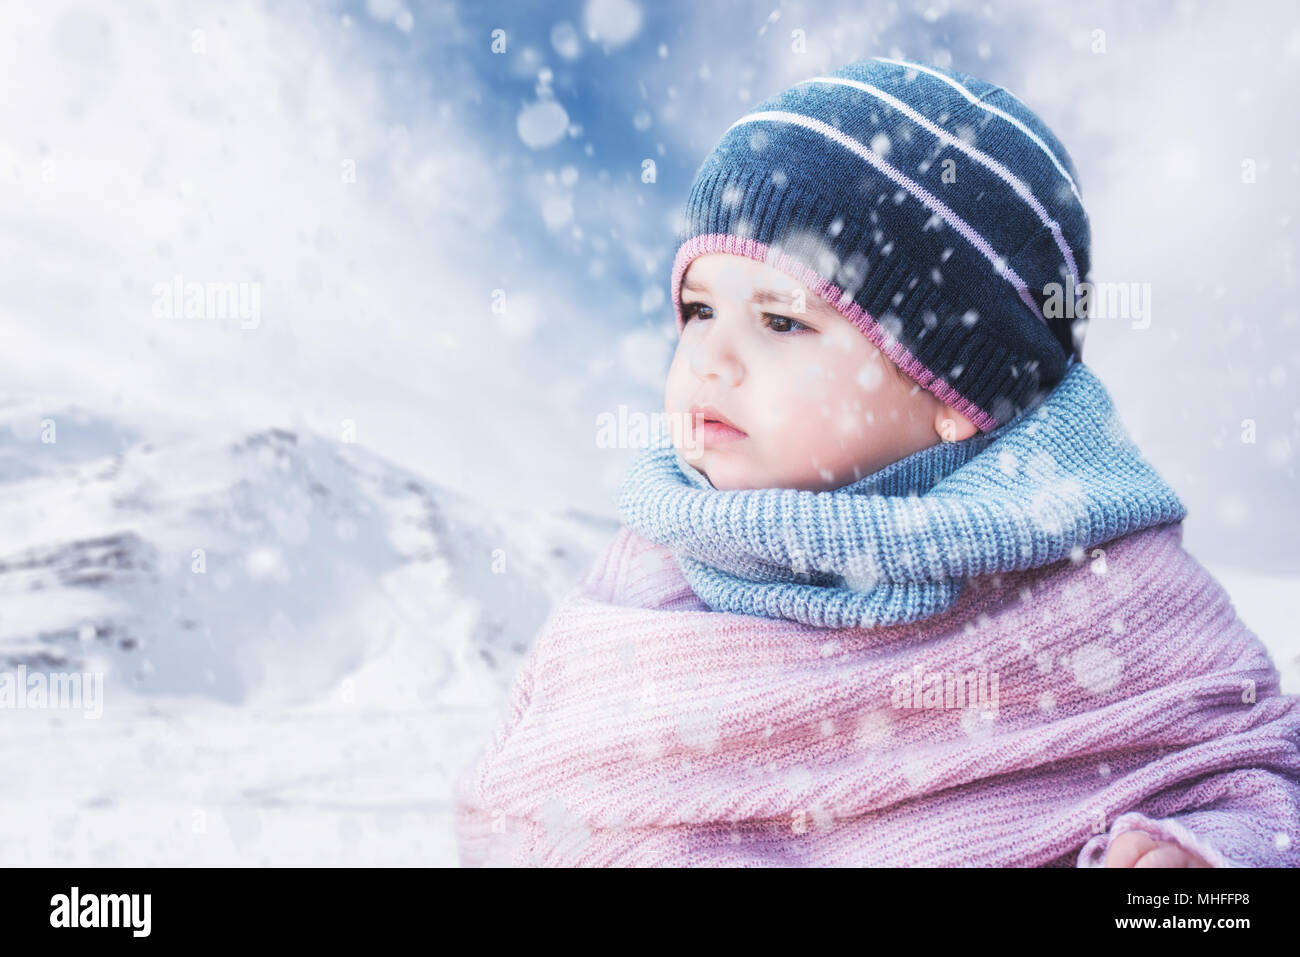 509360c9c Cute baby girl wearing a warm winter hat and a colorful hat on a ...